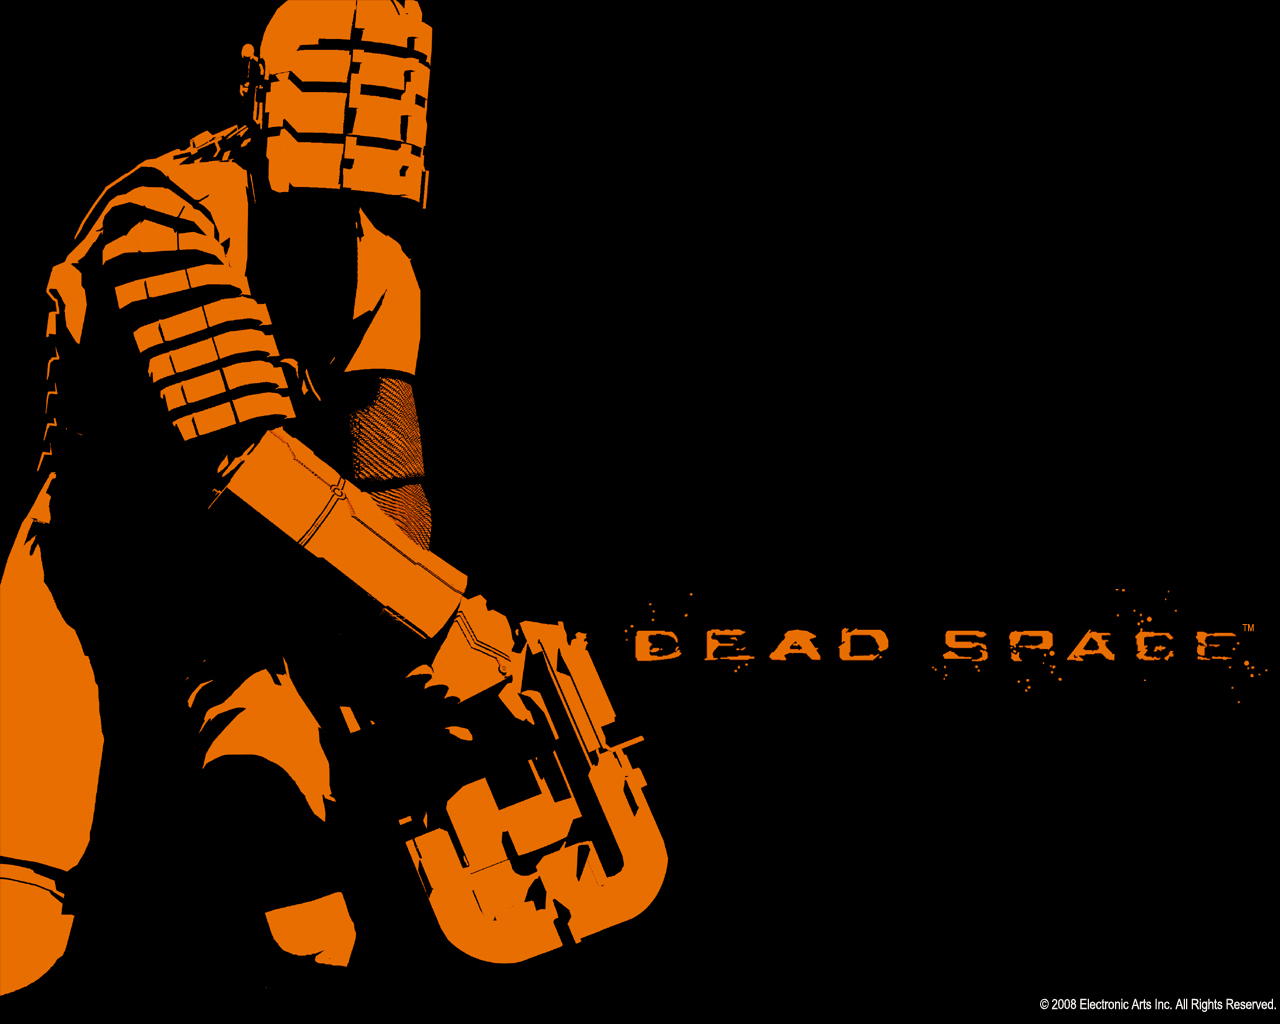 Dead Space 1280x1024